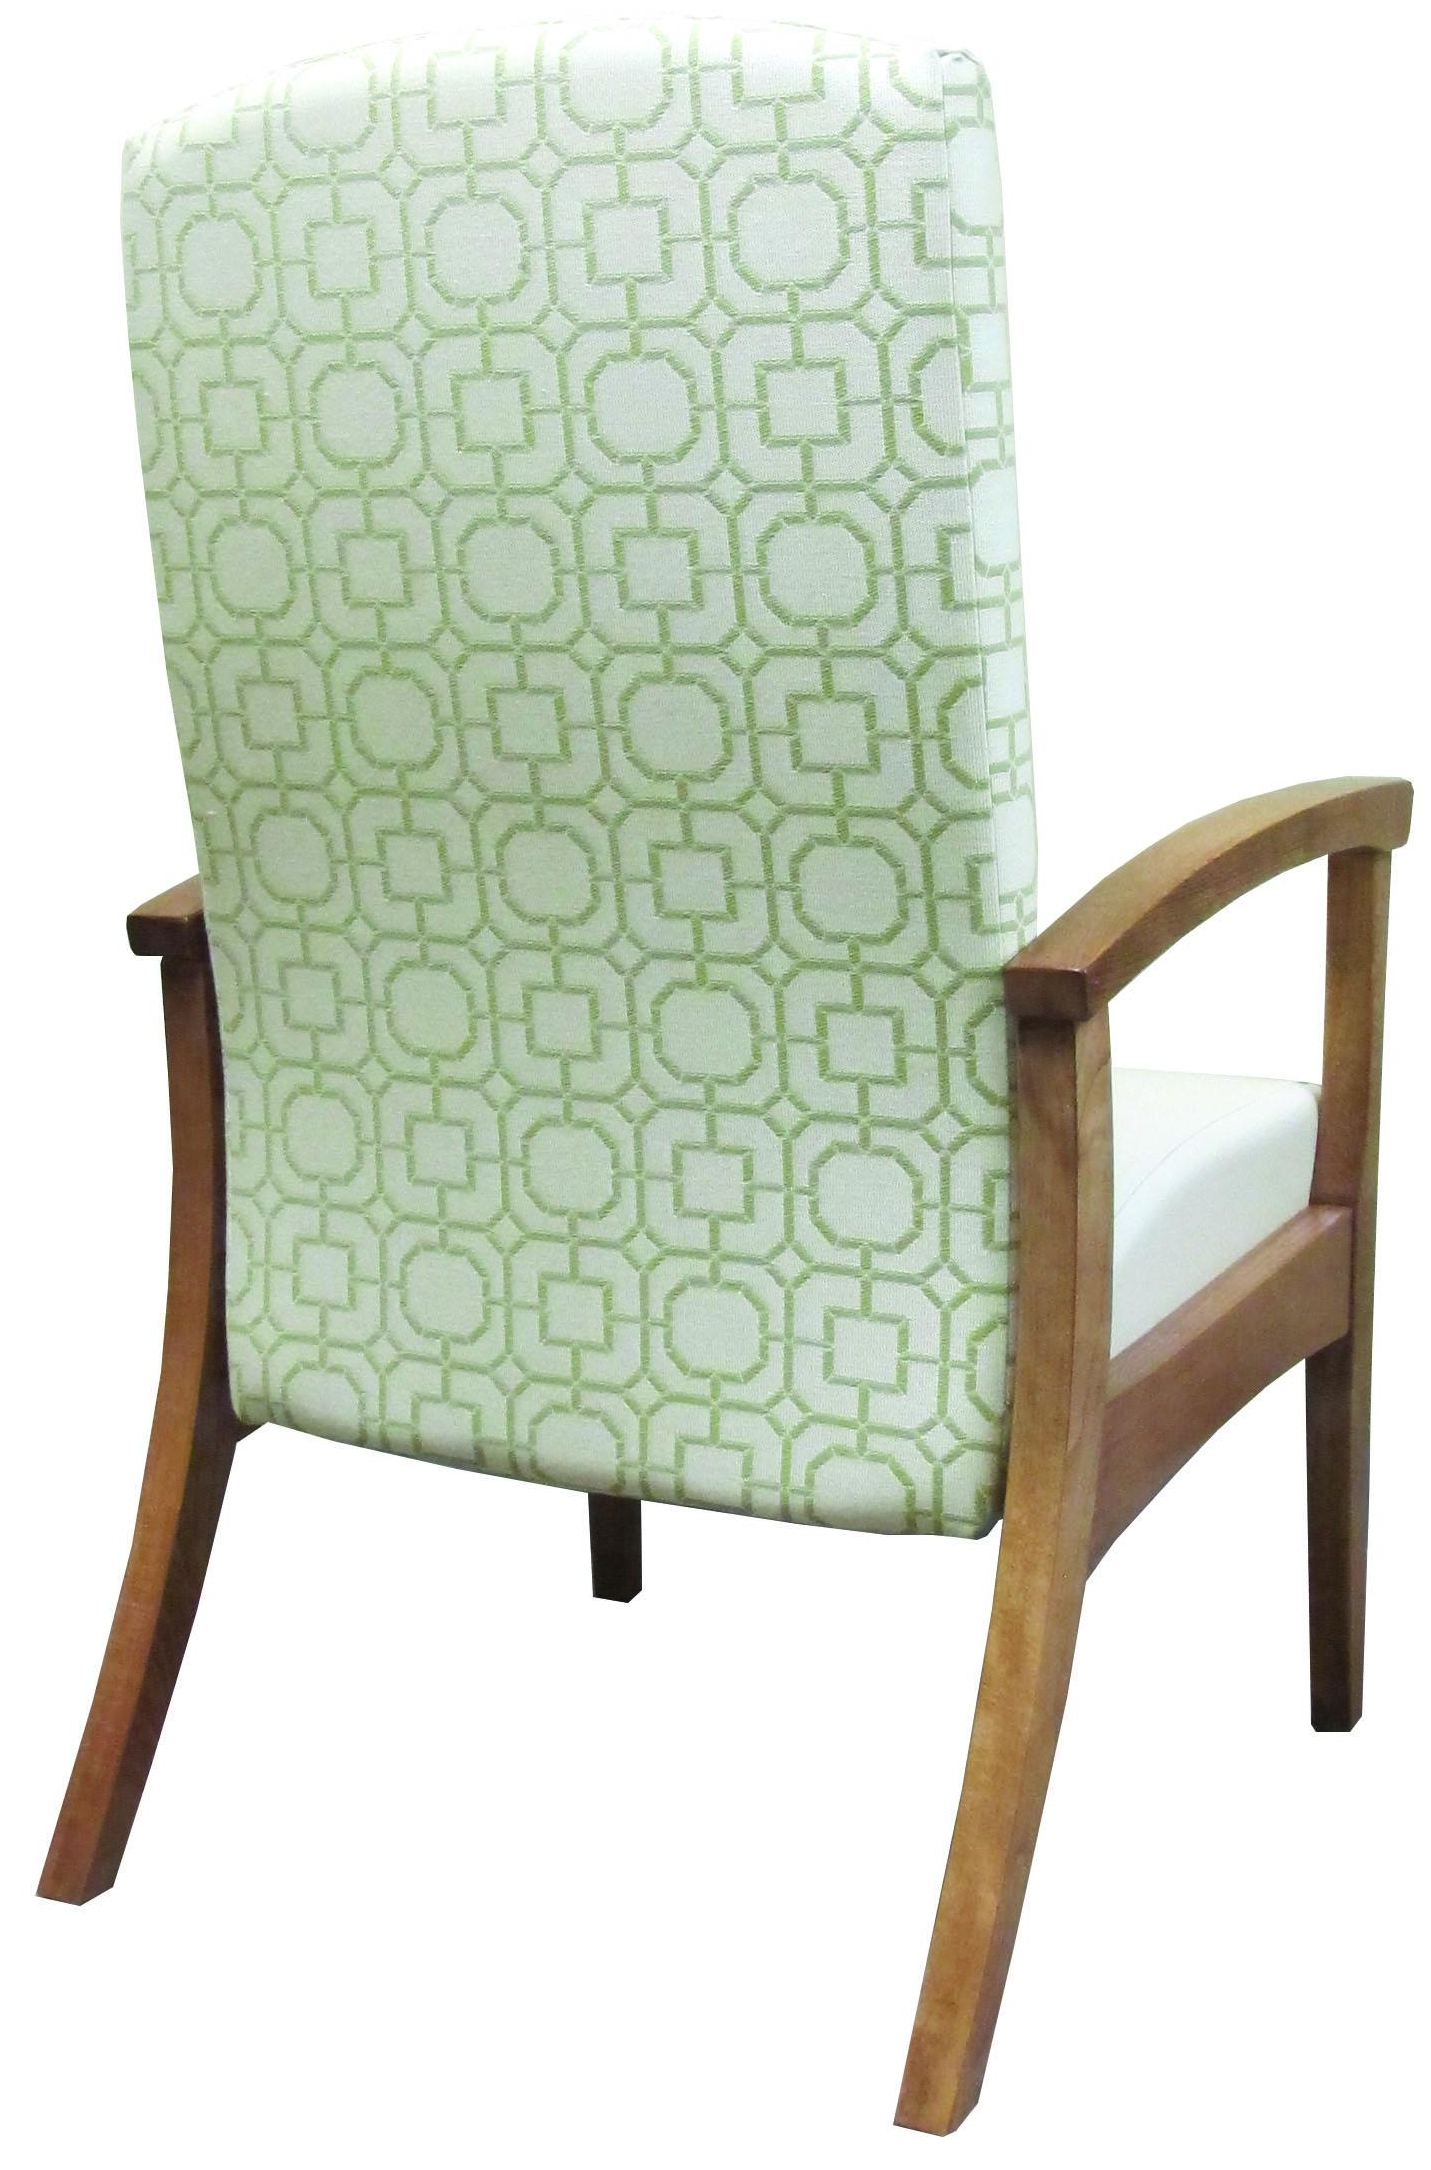 Richmond_Armchair_(back)_689-NCJ-A,_Kravet_31384-123,_Savanna_Oat_TSA-018.jpg